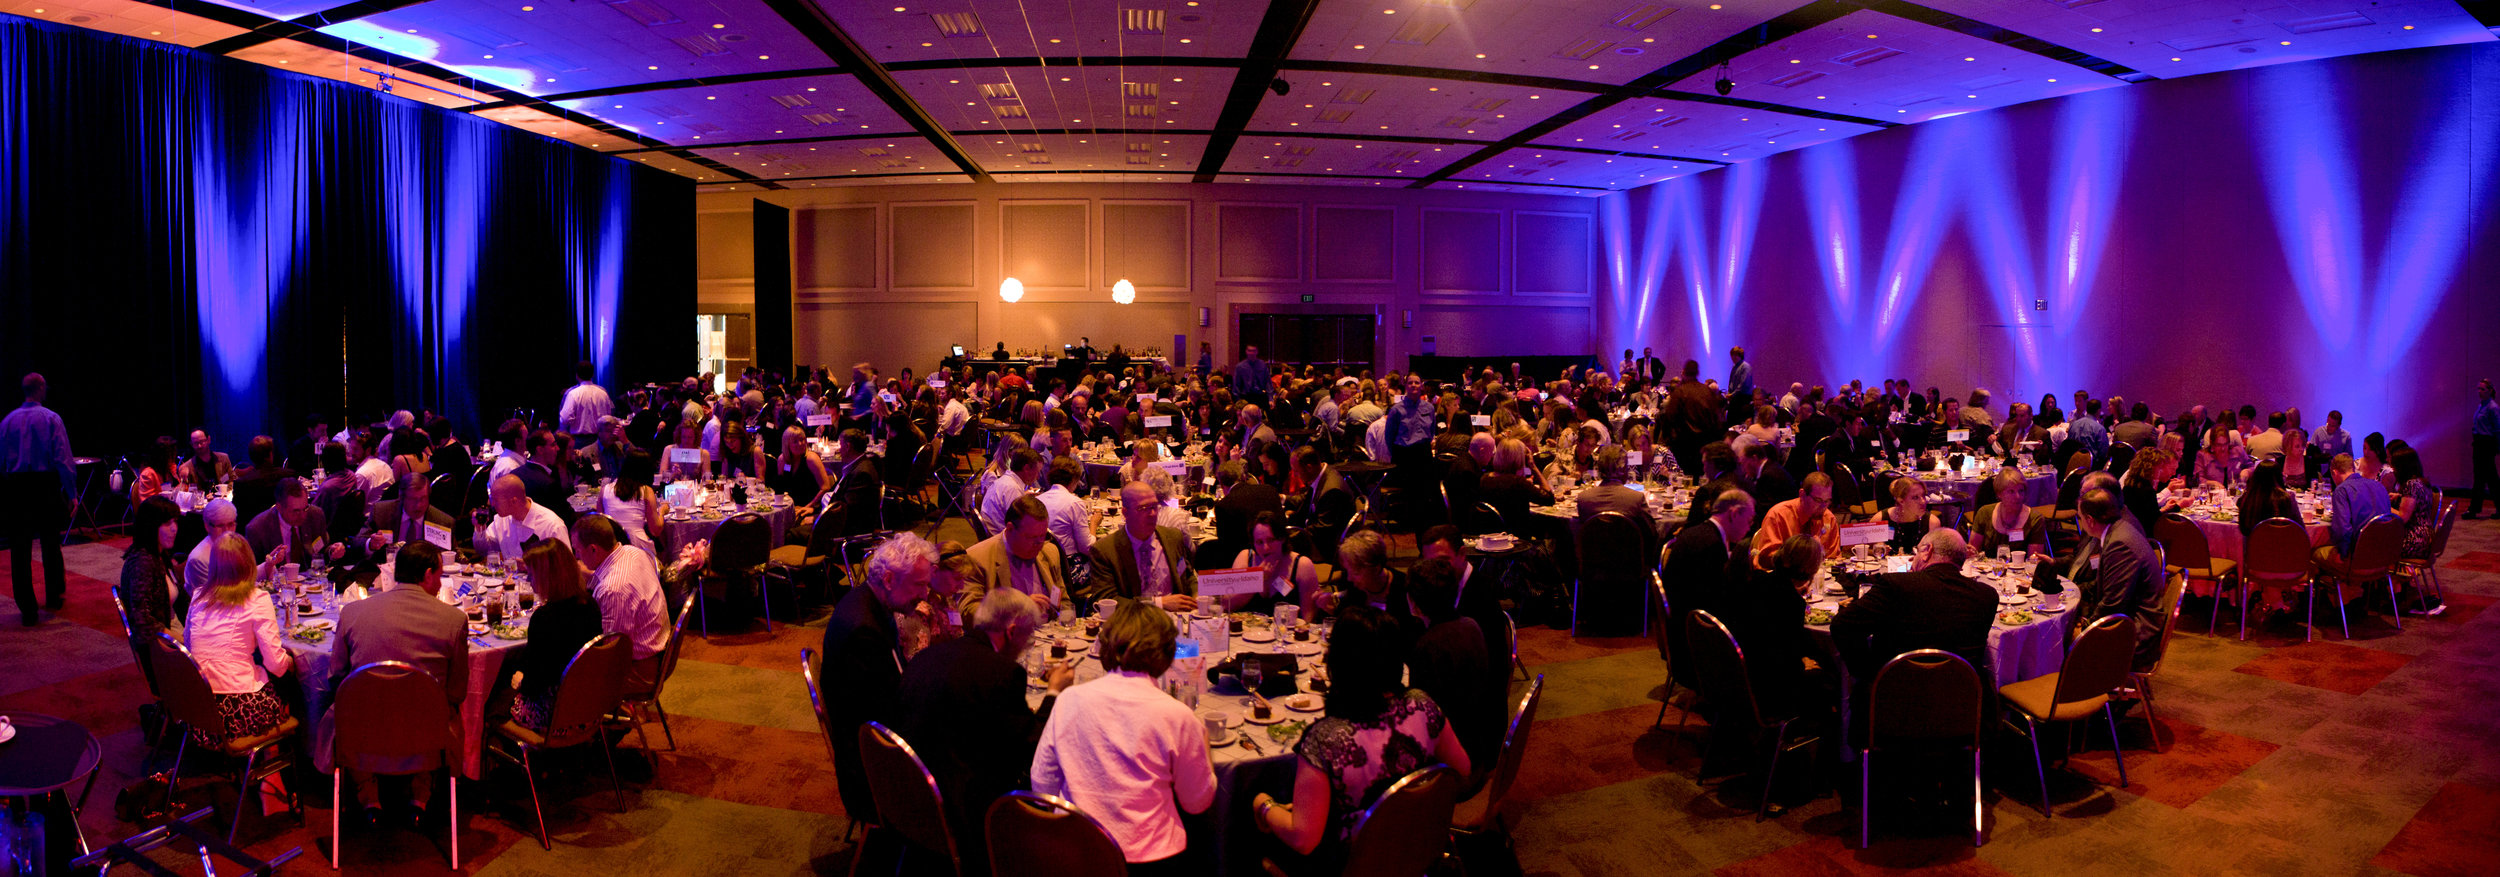 40 Under 40 Unliit Panorama.jpg